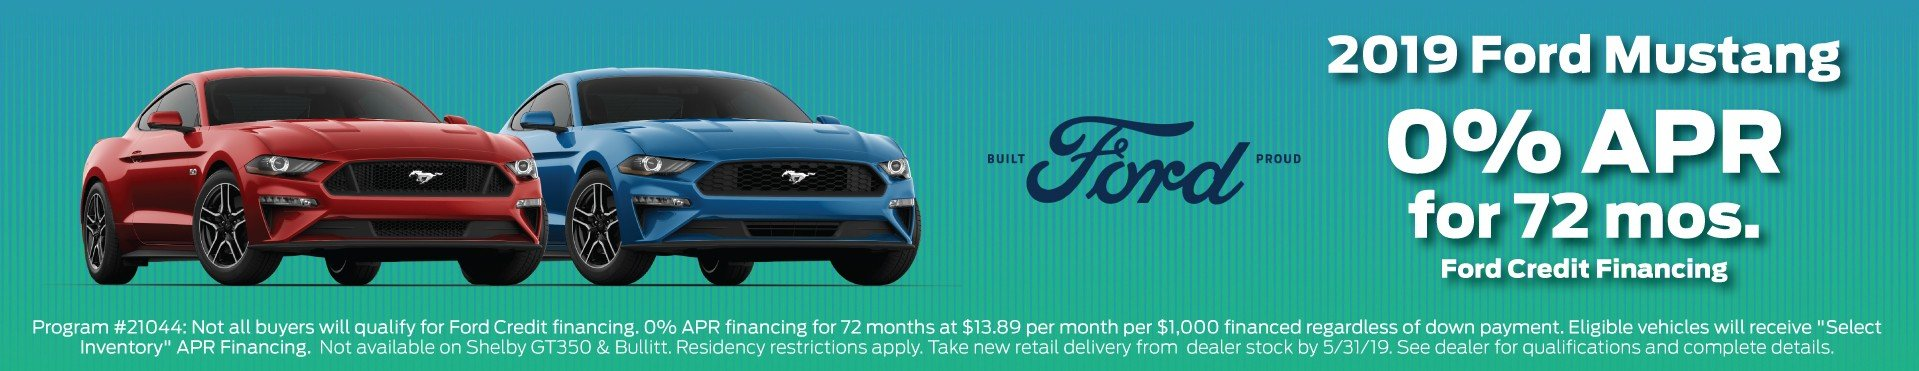 2019 Mustang Incentive 5-31-2019